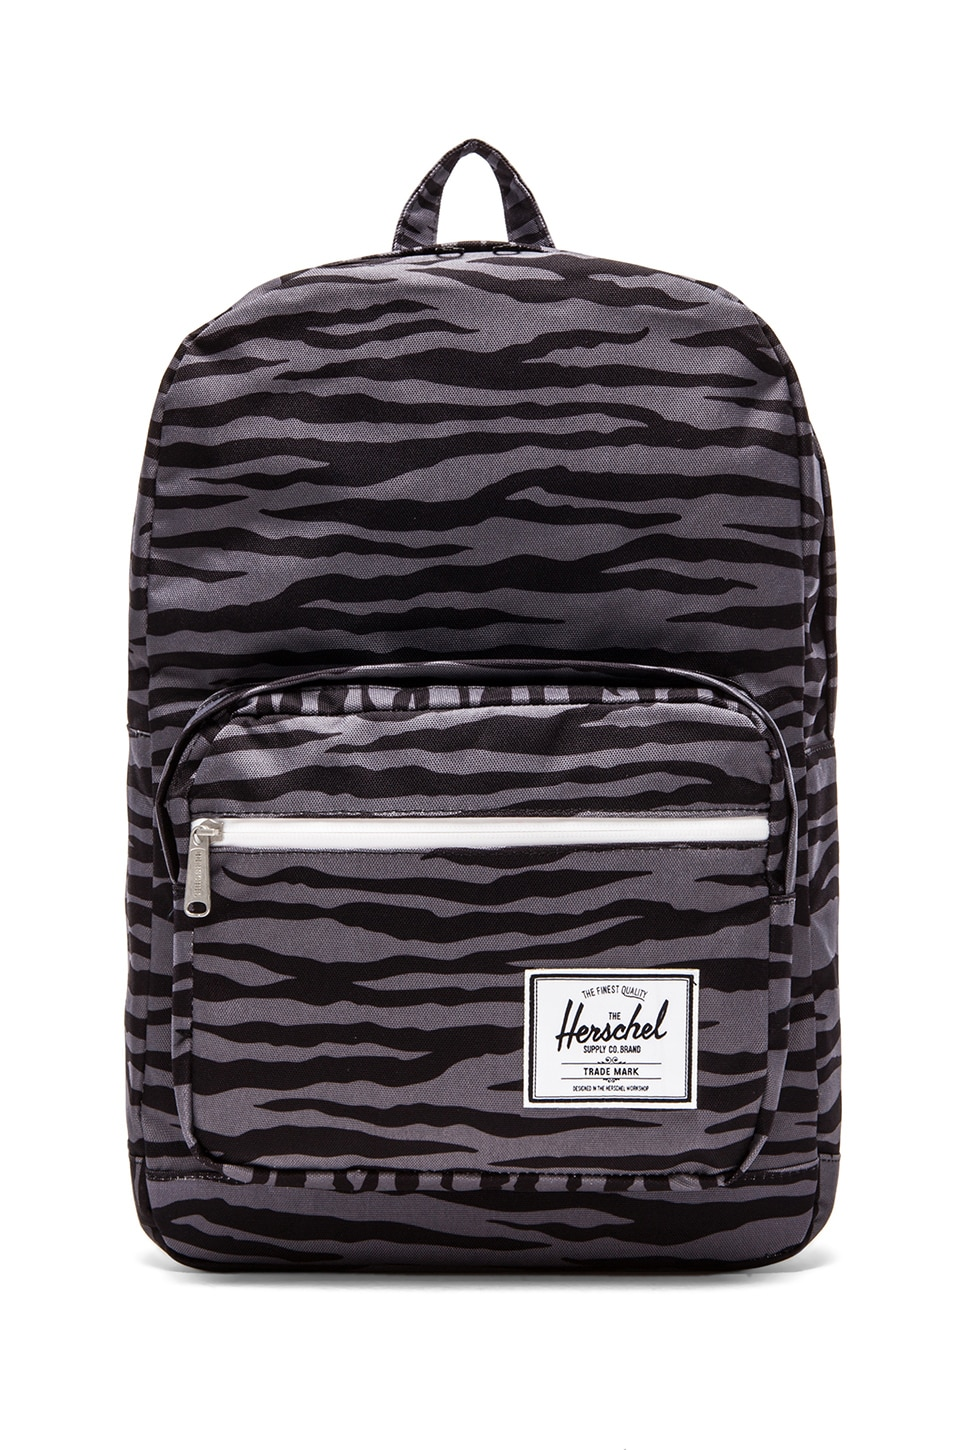 Herschel Supply Co. Pop Quiz Backpack in Zebra